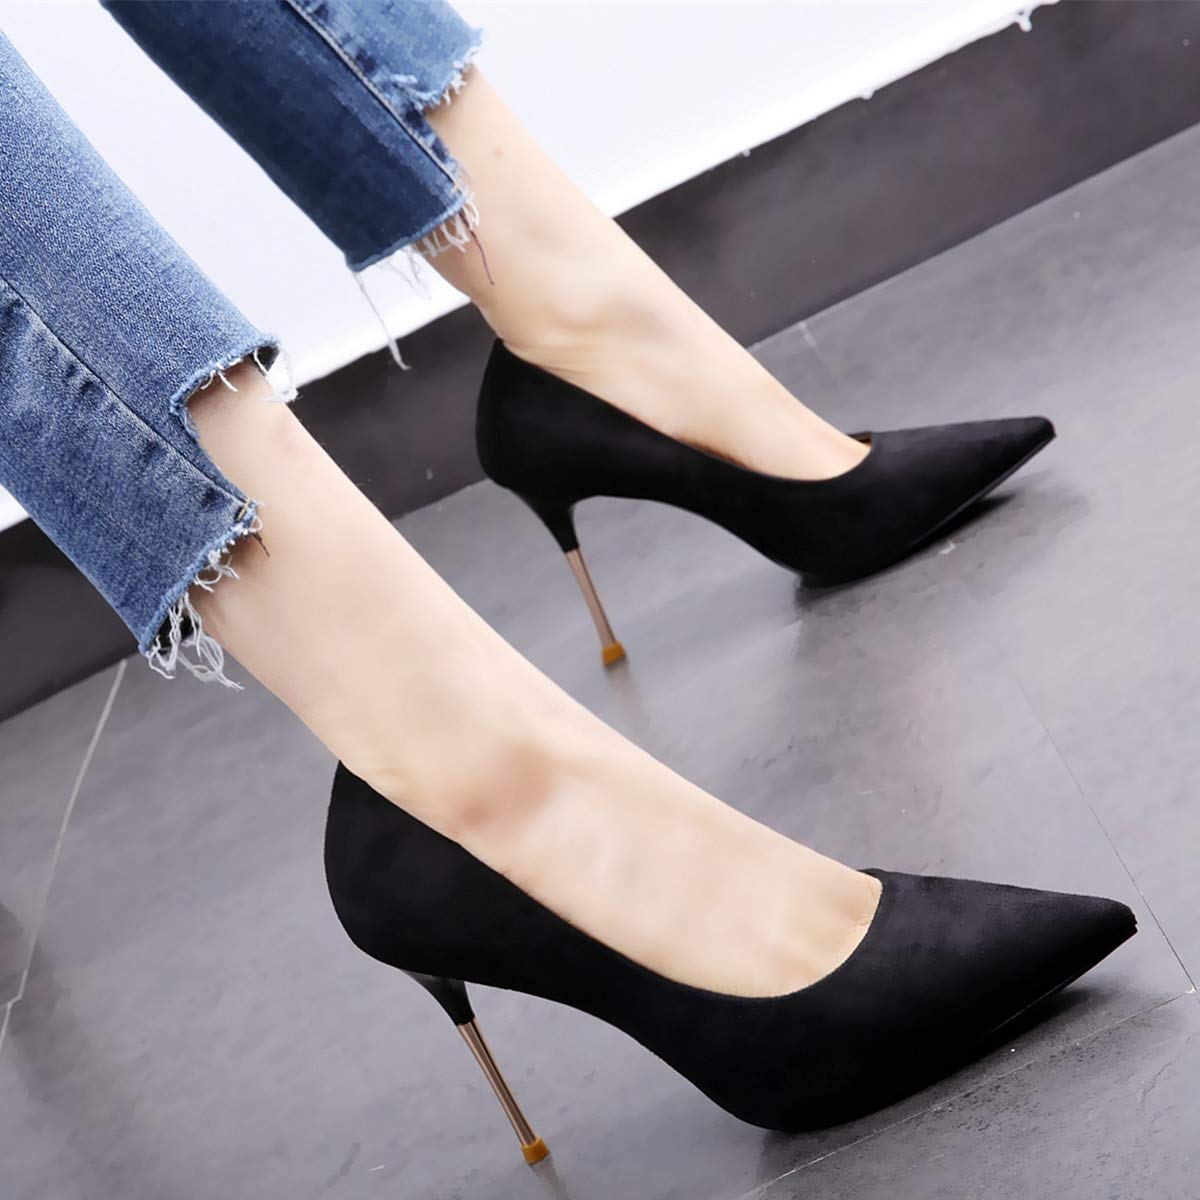 HOESCZS 2019 Spring and Autumn New Pointed schuhe Metal with Stiletto Heels Single schuhe schwarz Female Work schuhe